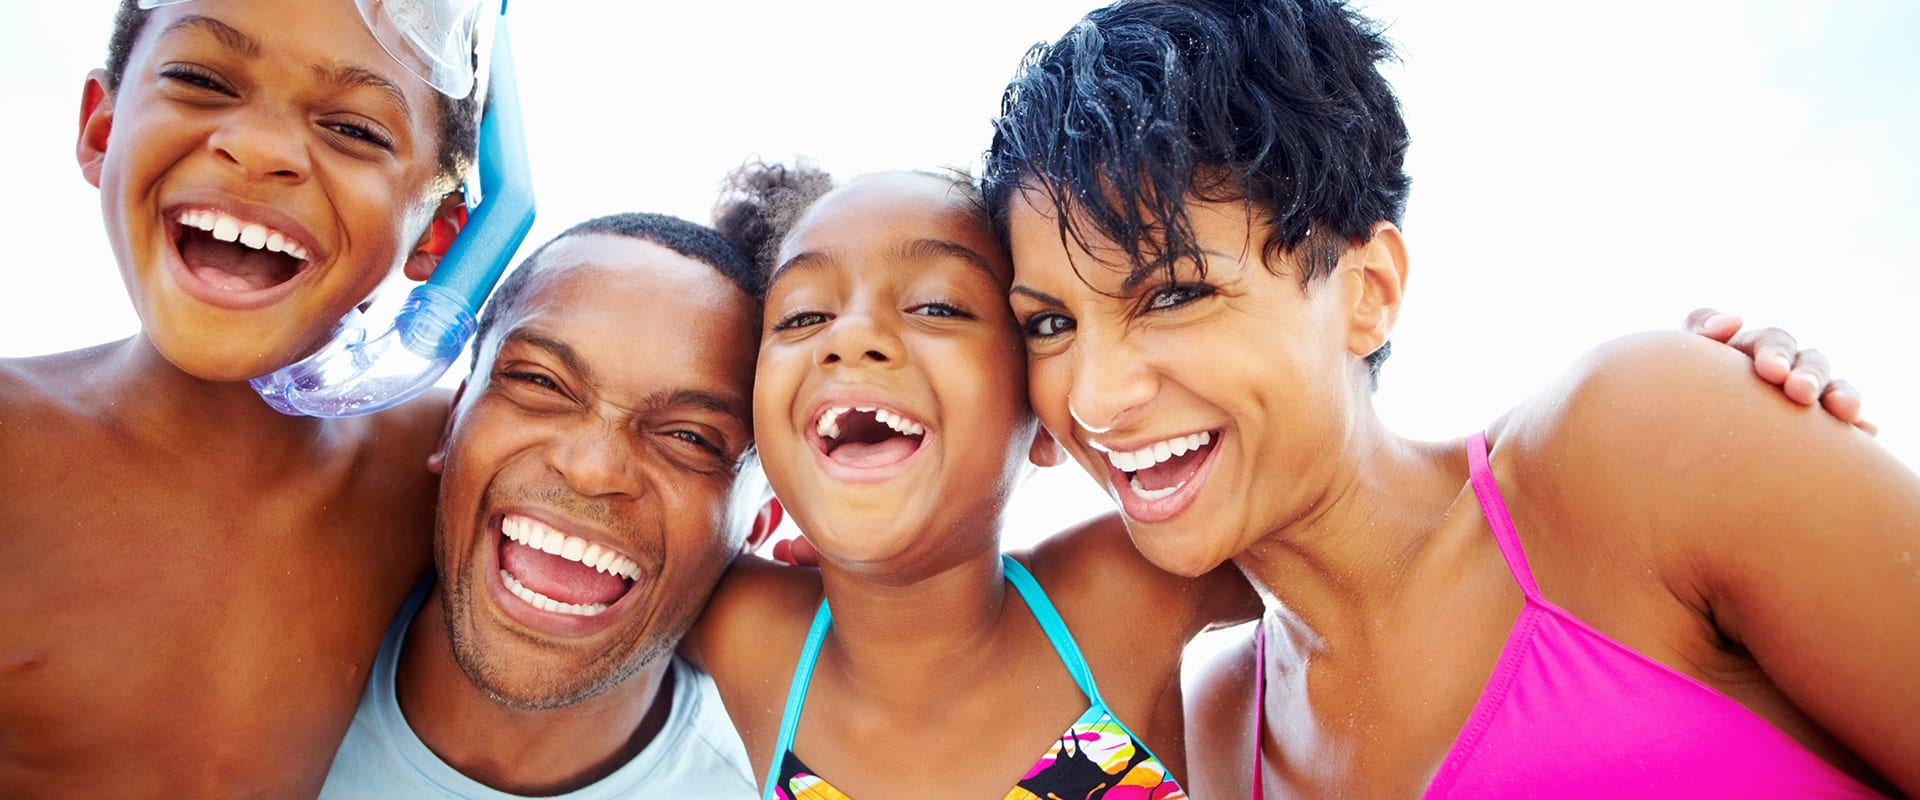 Family laughing while posing in swimsuits